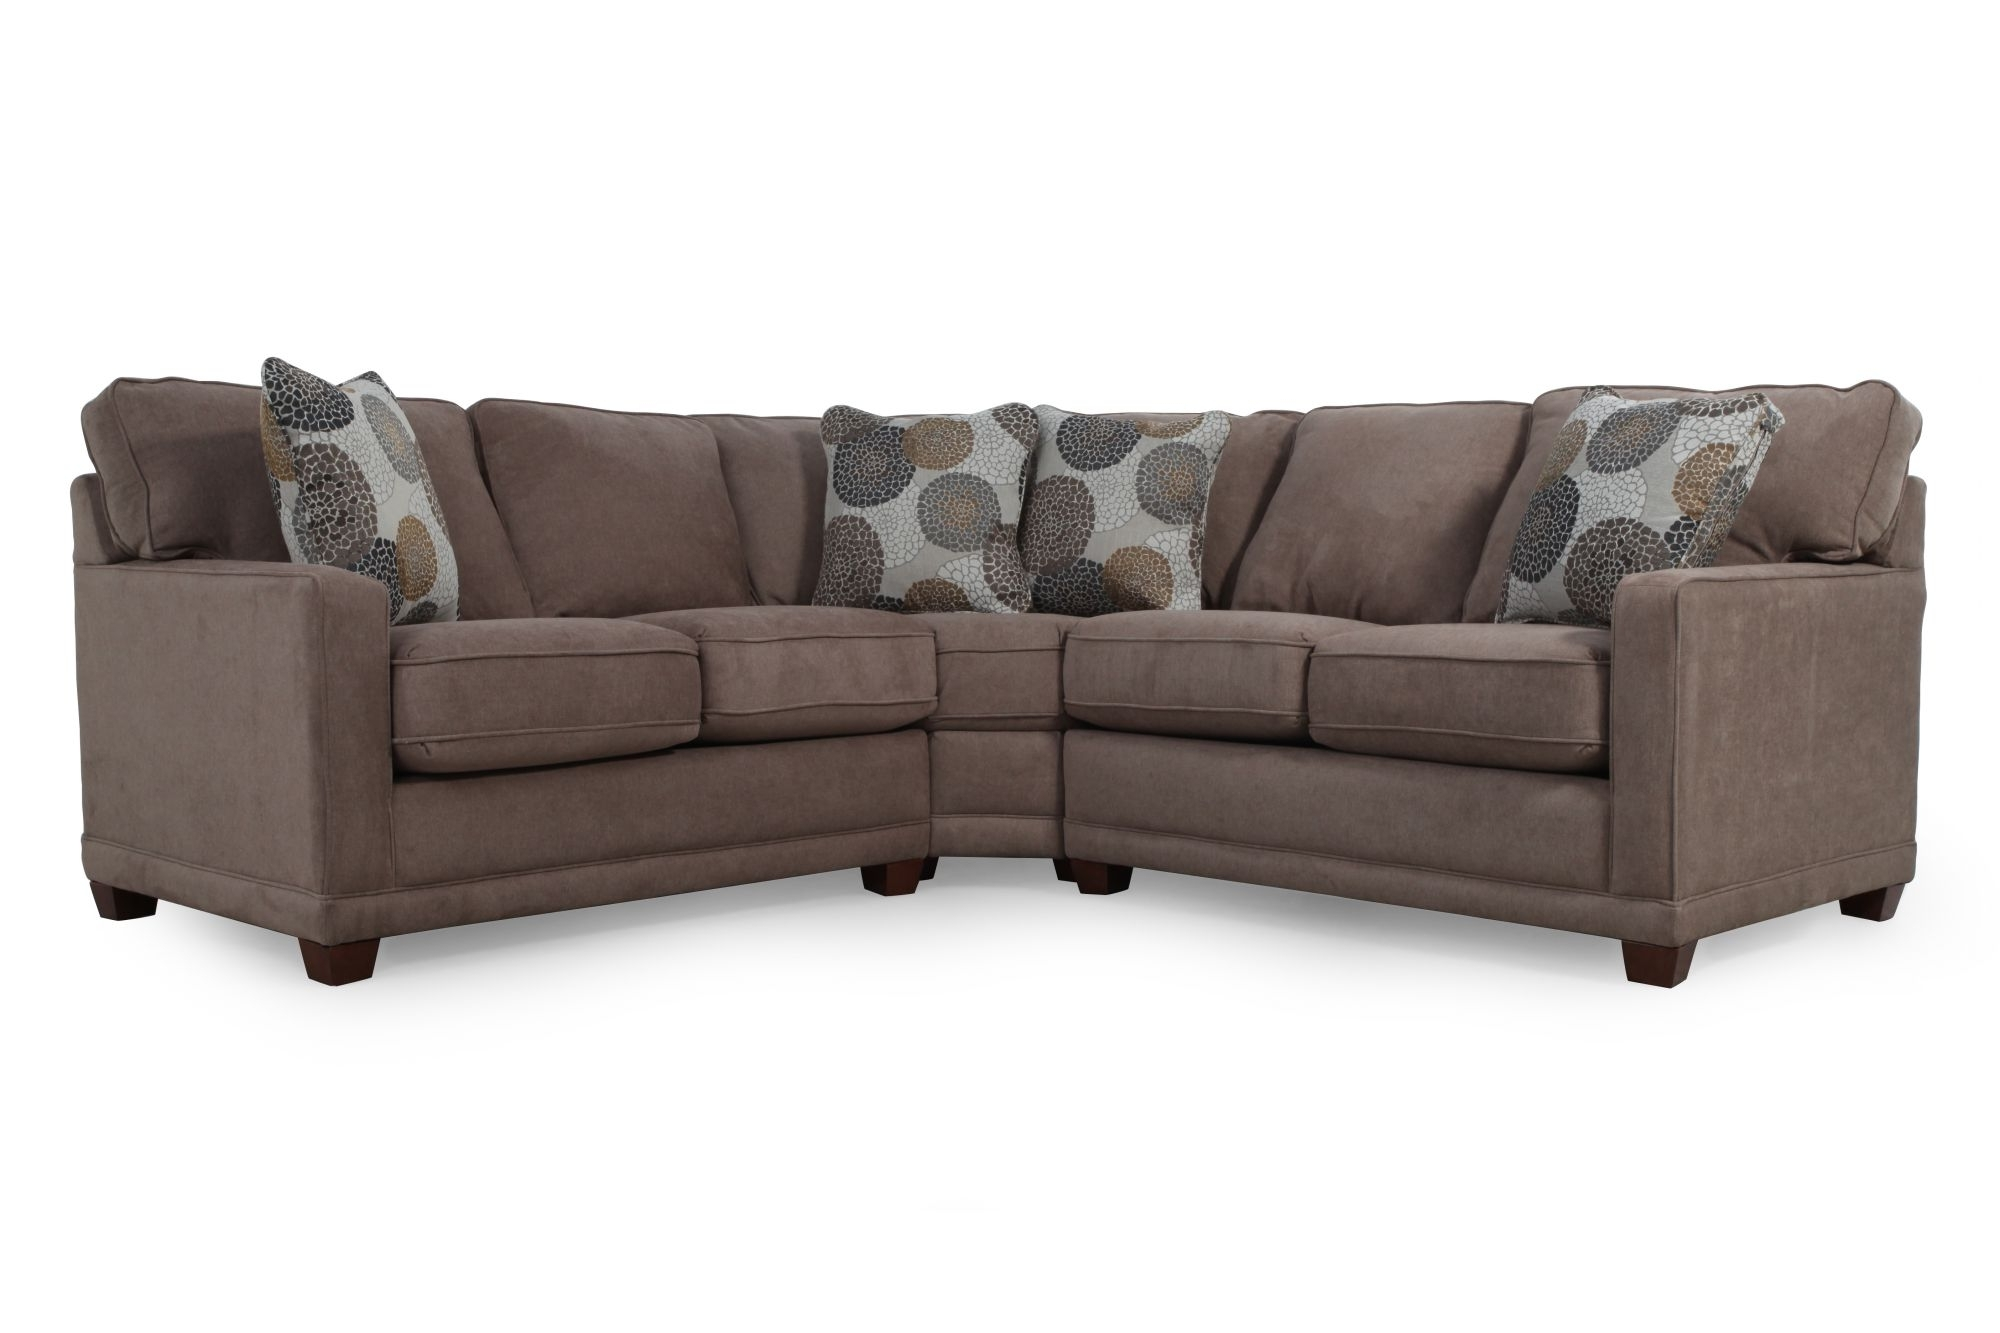 Merveilleux Lazy Boy Sectional Sofas Regarding Most Popular Lazy Boy Sectional Sofa U2013  Visionexchange.co (